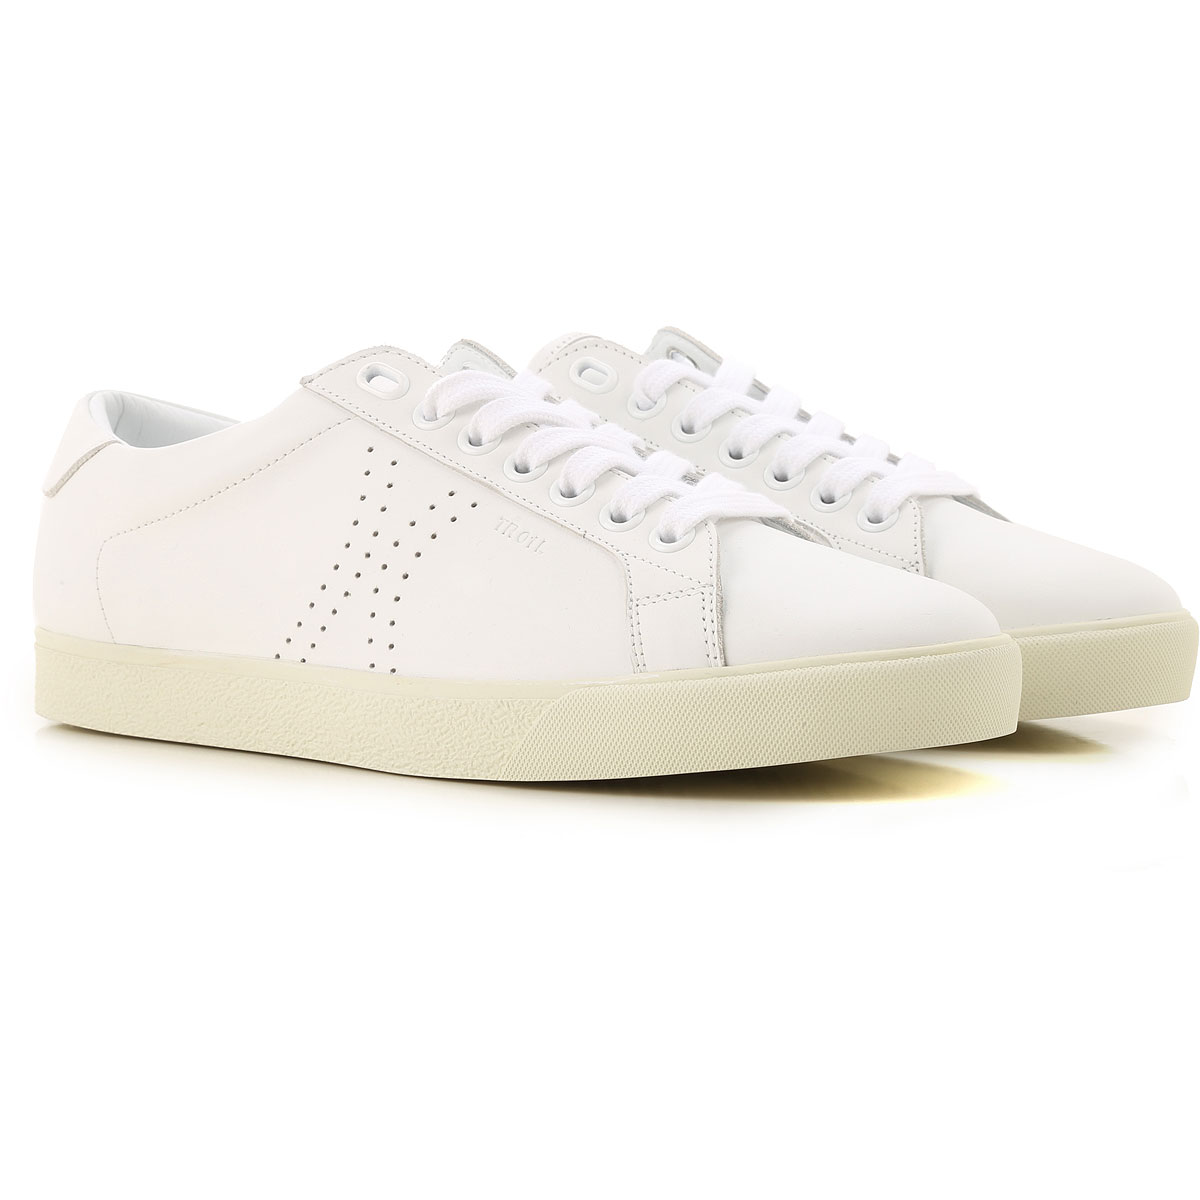 Celine Sneakers for Women On Sale, White, Leather, 2019, 6 8